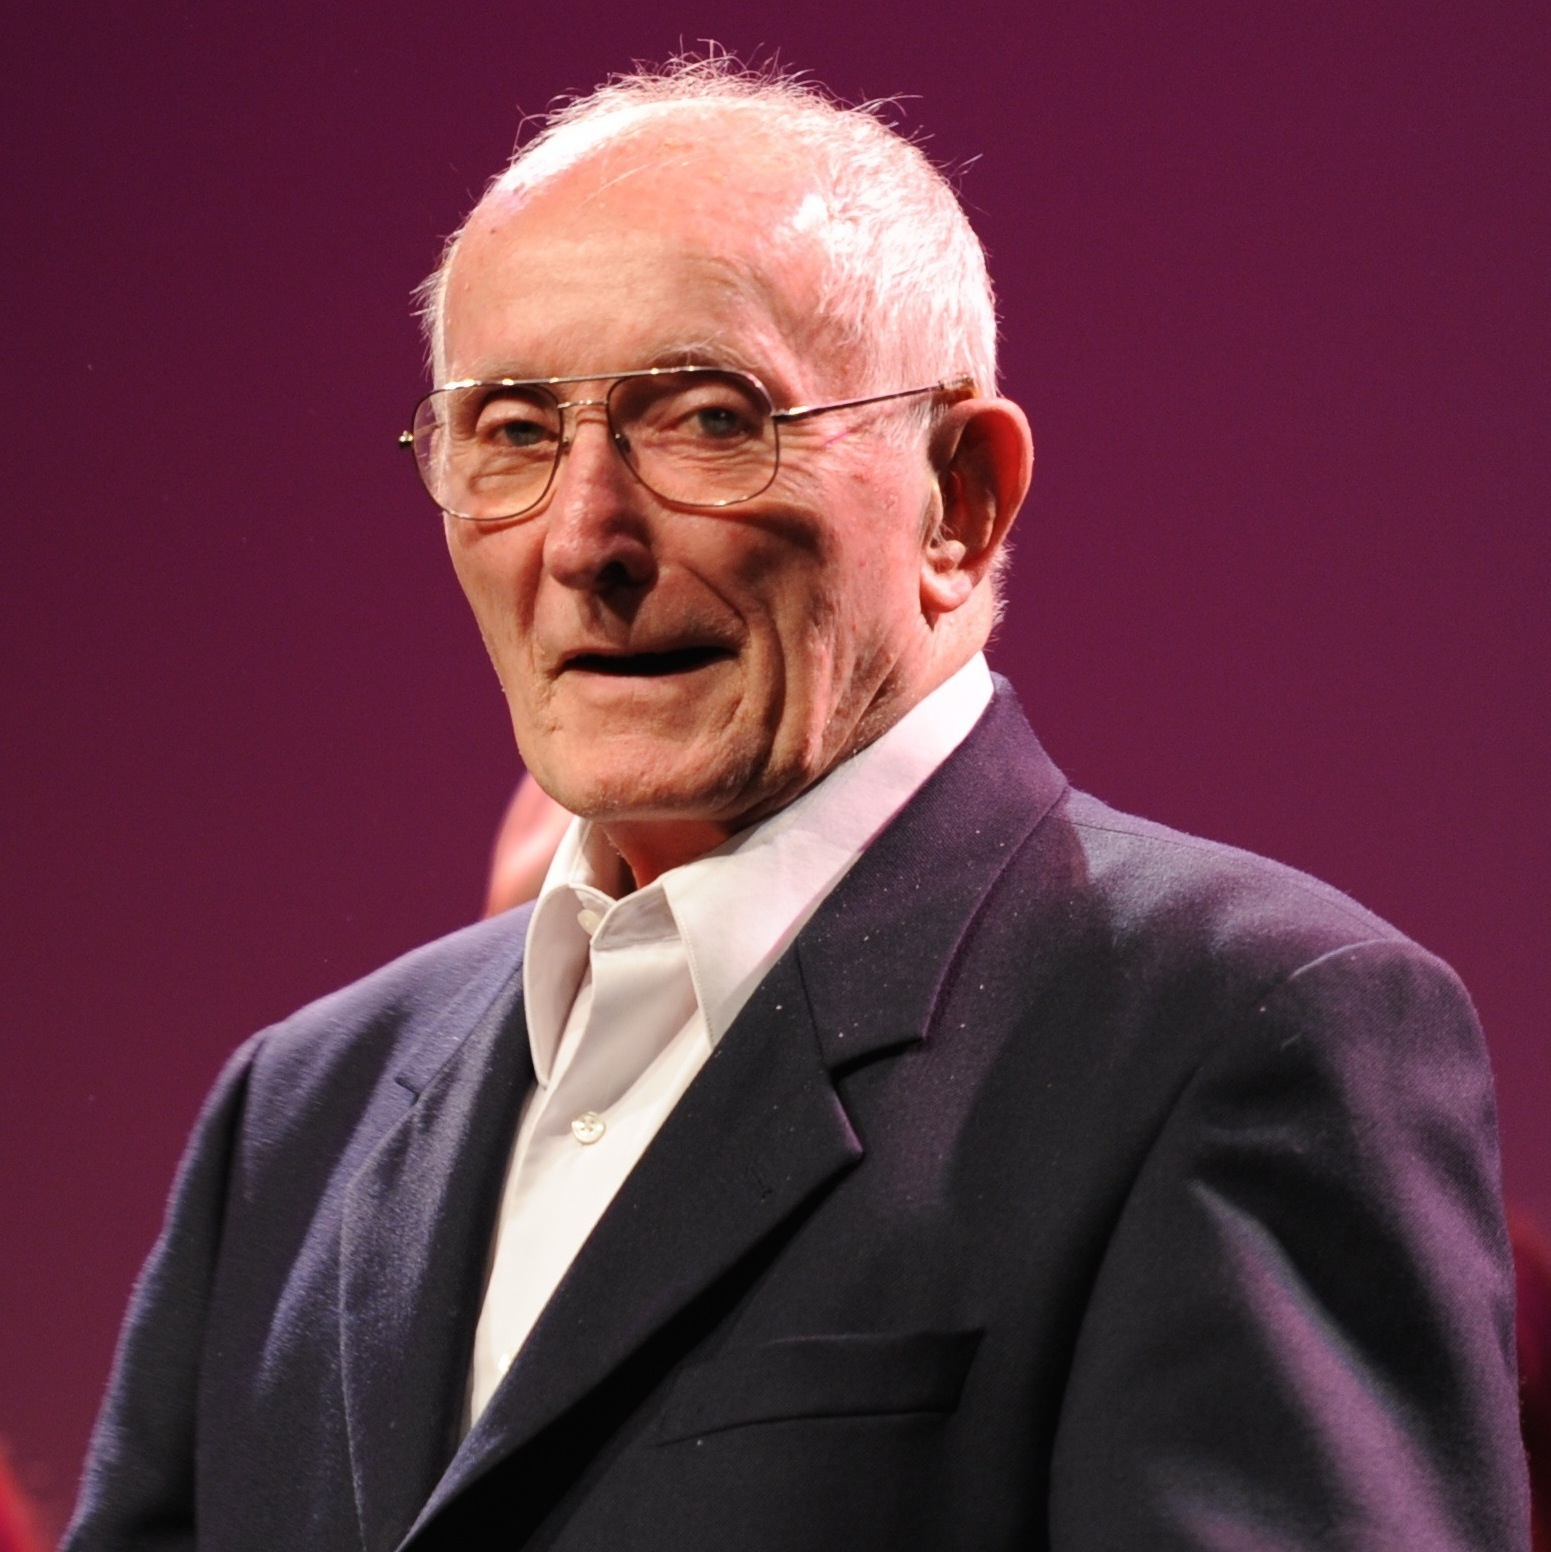 Ward in 2010 at a Swingle Singers reunion. Photocredit: Roswitha Chesher